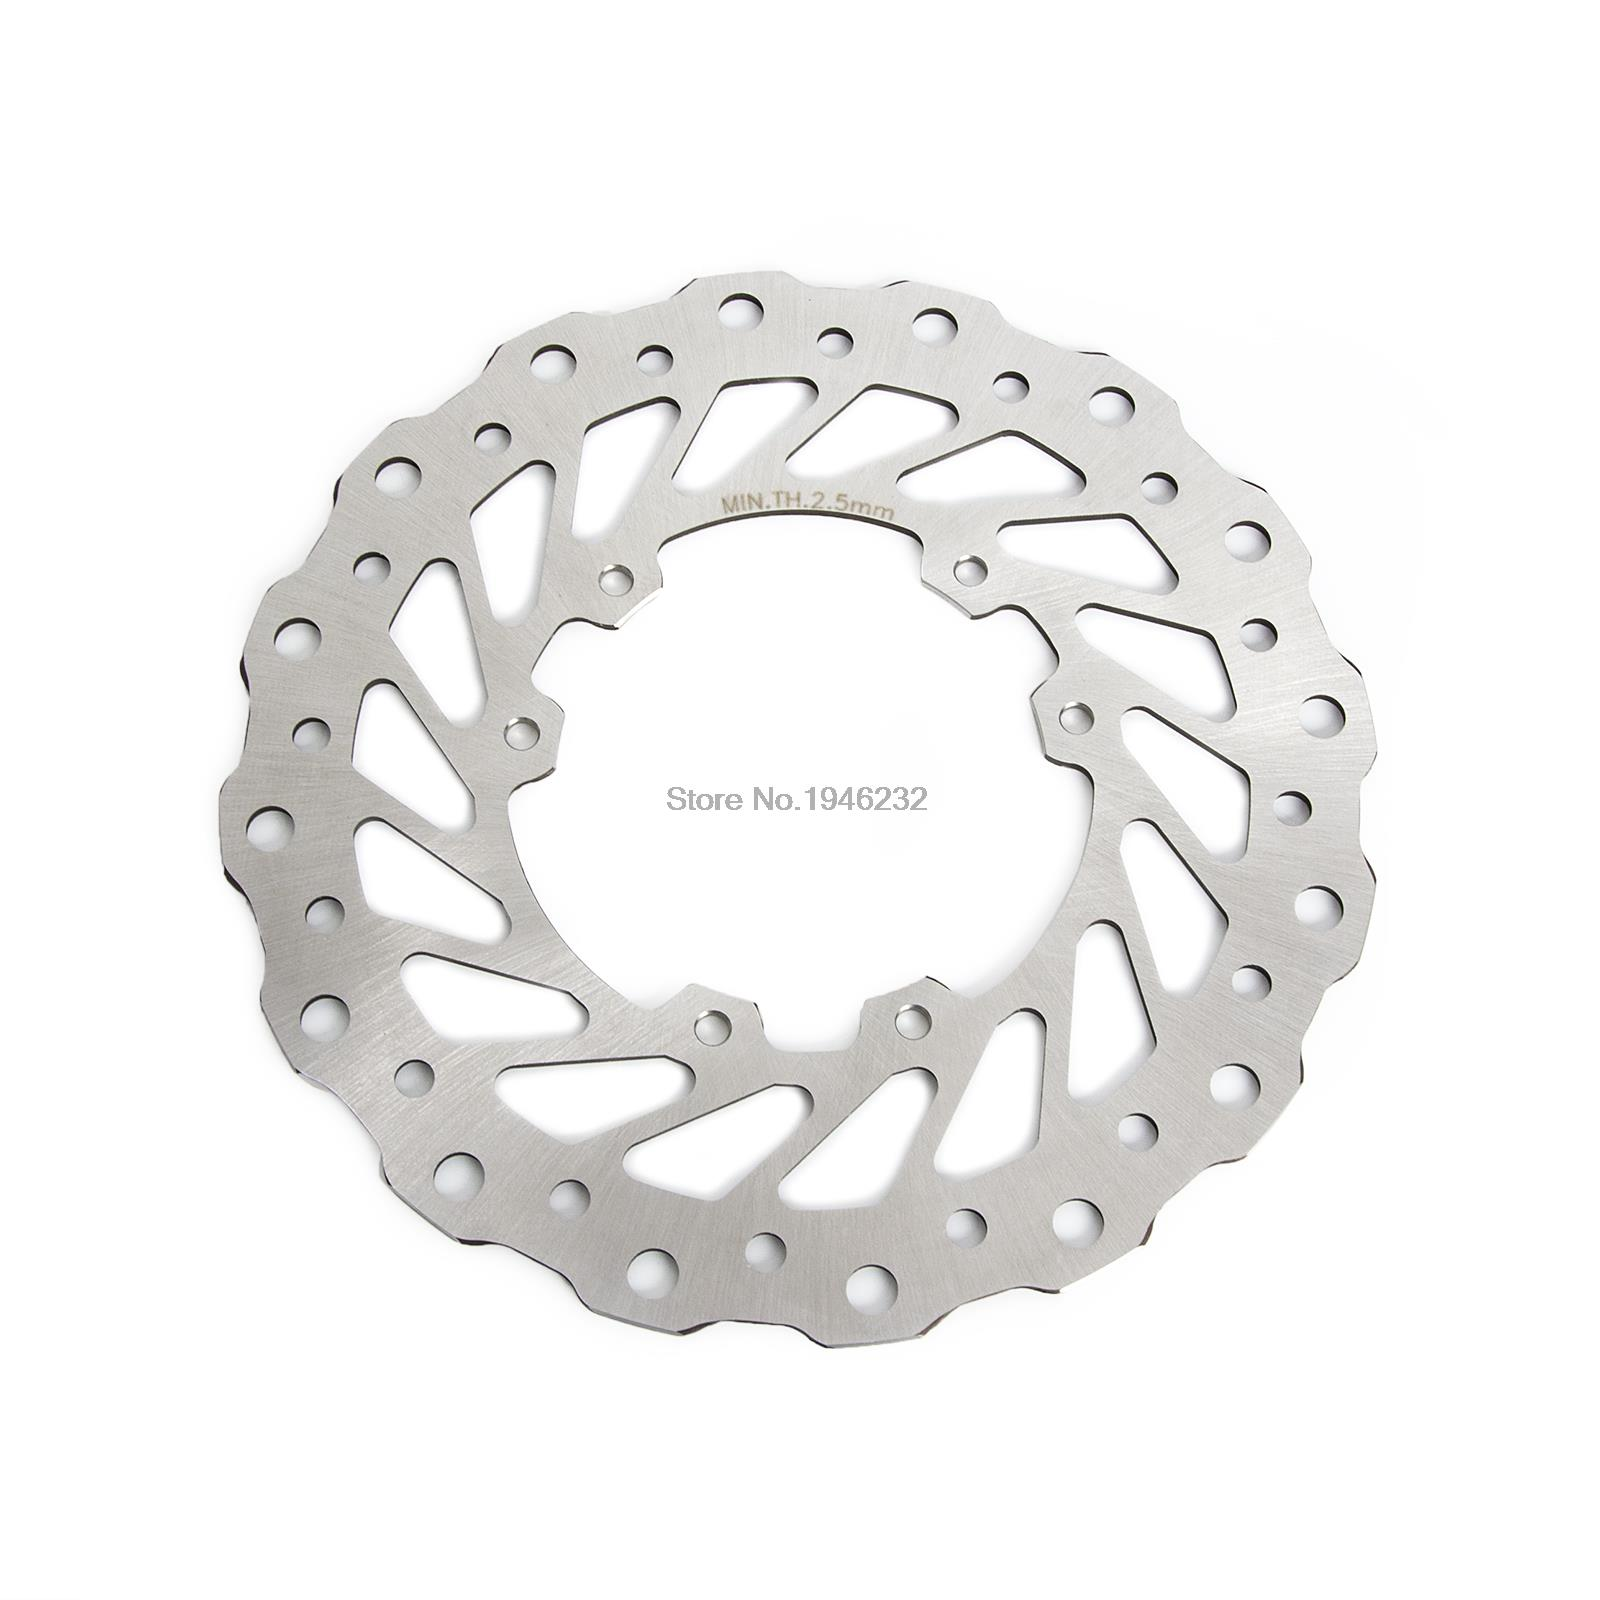 Metallic Front Brake Disc Rotor  For Honda 125cc CR 125 CR250 1995-2007 CRF250 CRF450 2004-2014 CR 500 1995-2001 накладки на пороги honda cr v ii 2001 2007 carbon